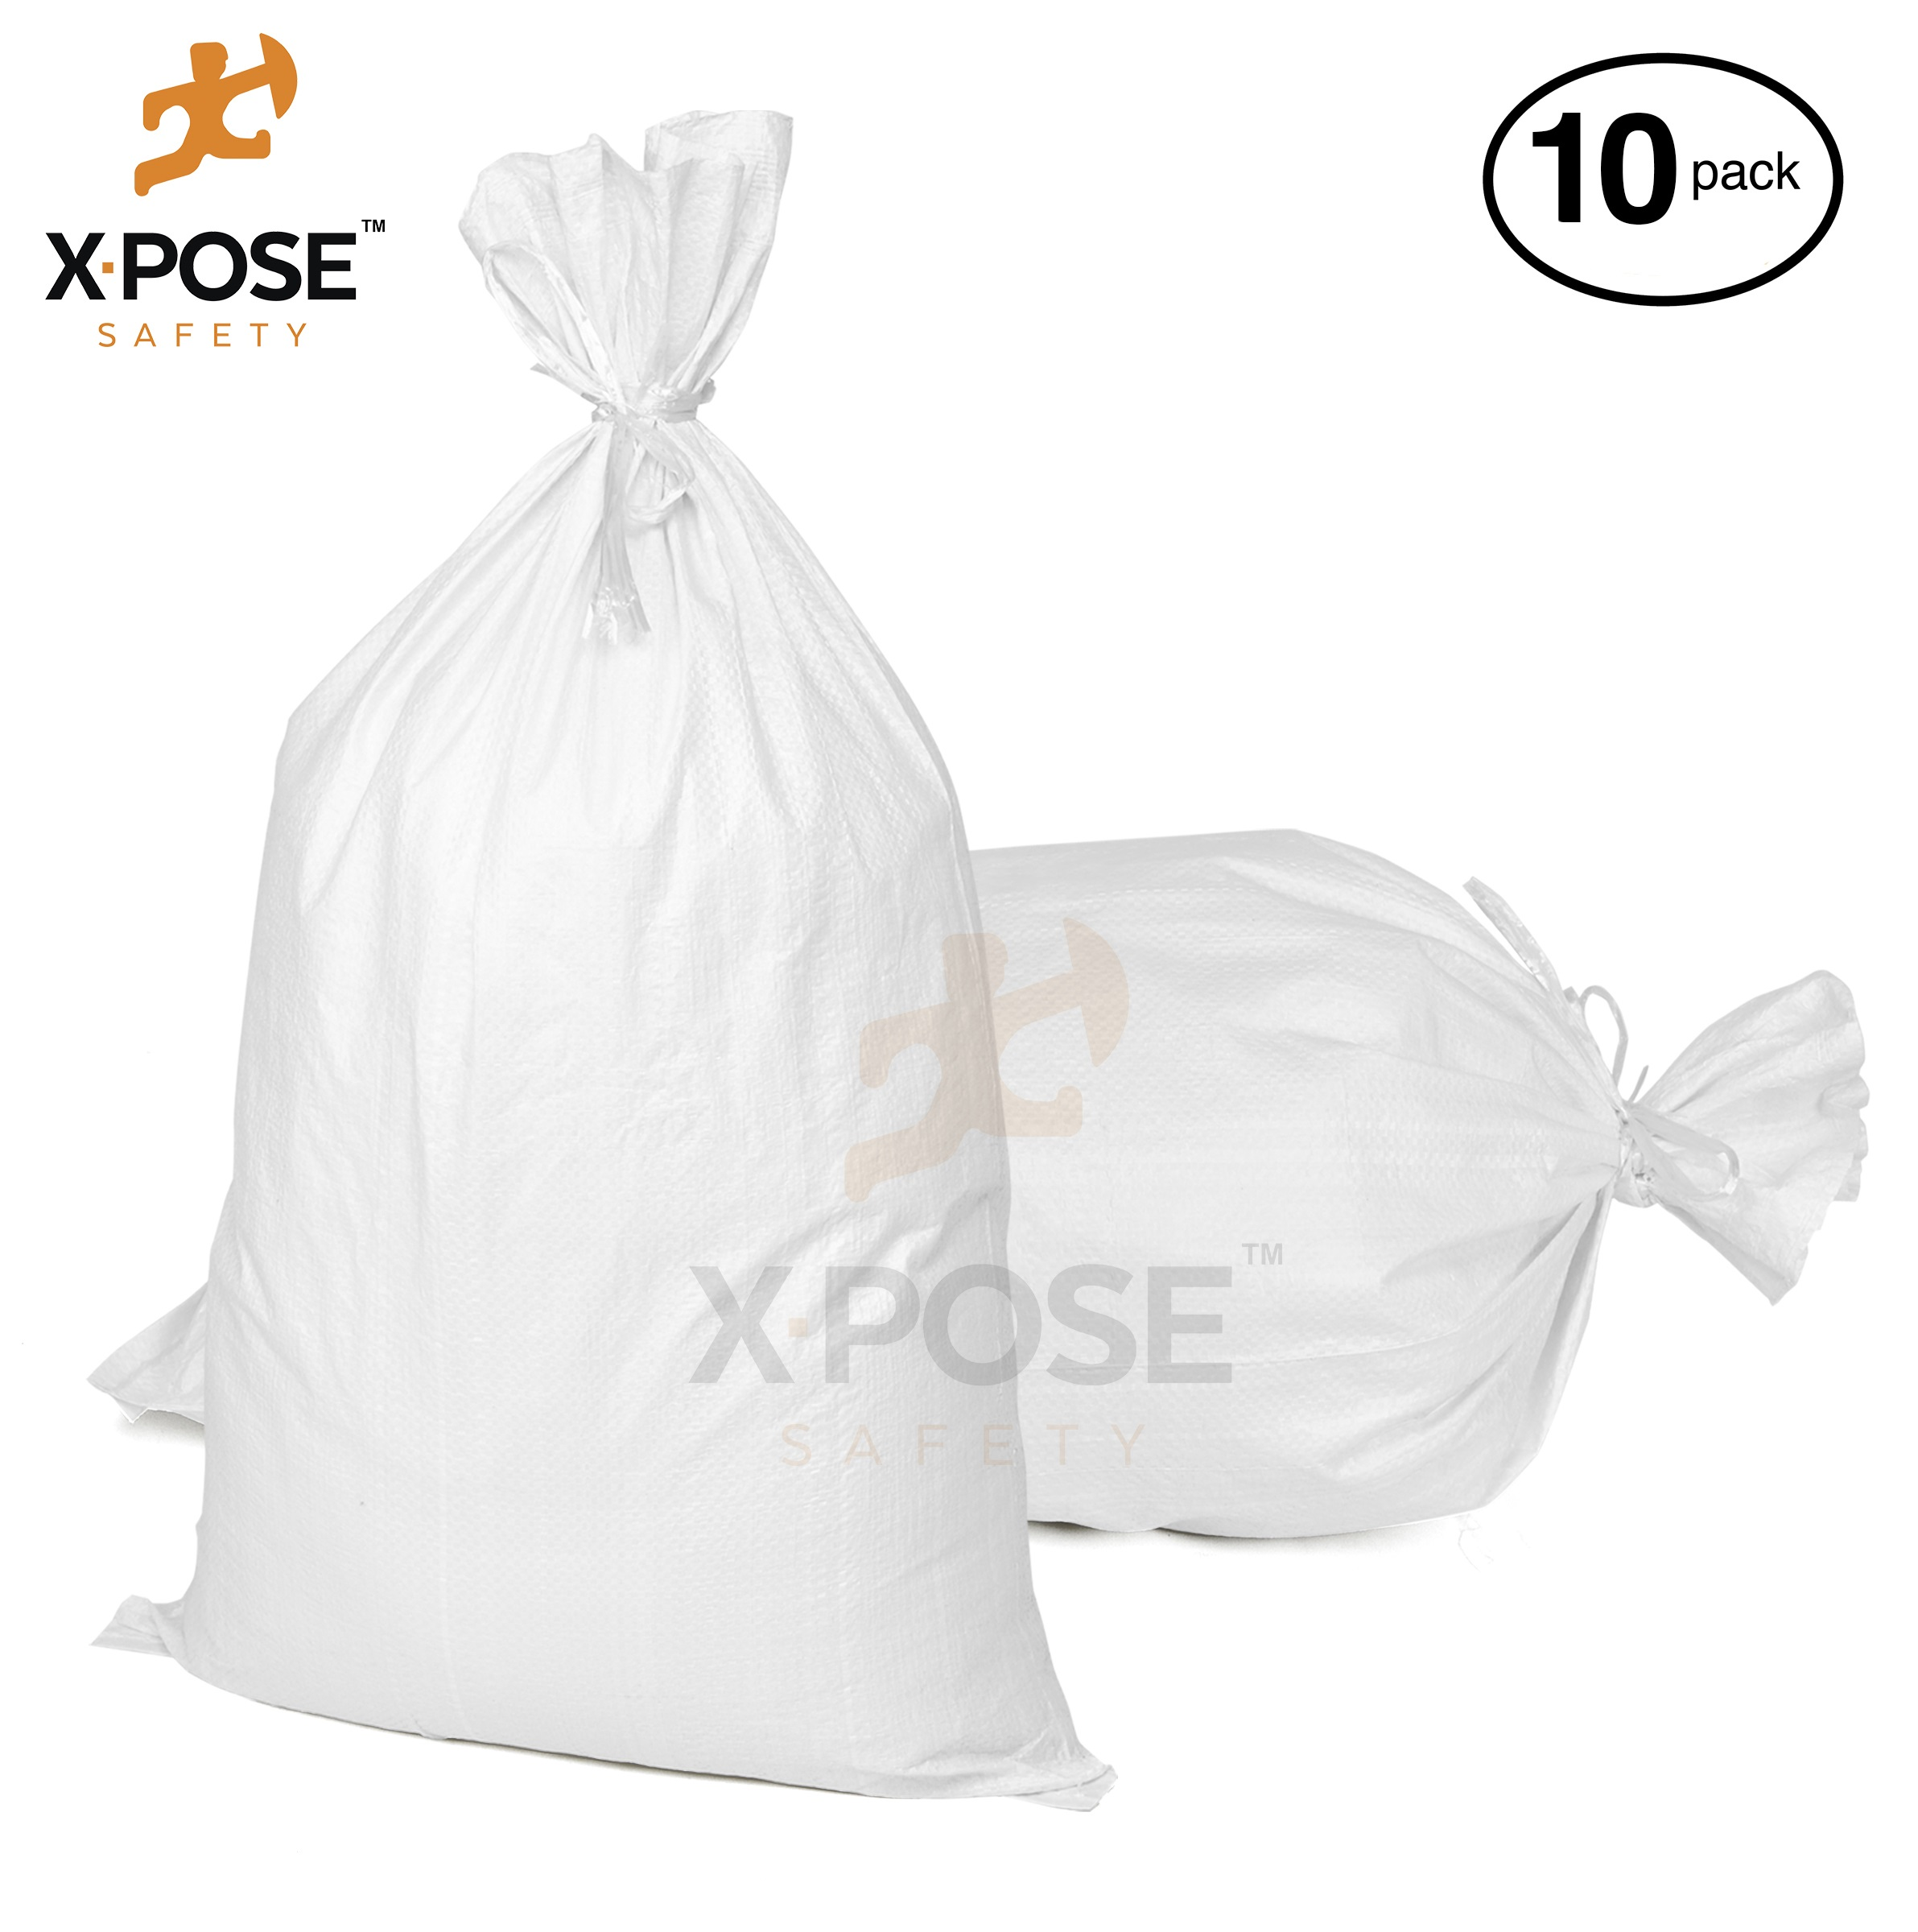 "17"" x27"" Empty Sand Bags, 10 Pack with Ties Heavy Duty Woven Polypropylene, UV Sun Protection, Dust, Water and Oil Resistant - Home and Industrial - Floods, Photography and More - by Xpose Safety WSB-1727-10"